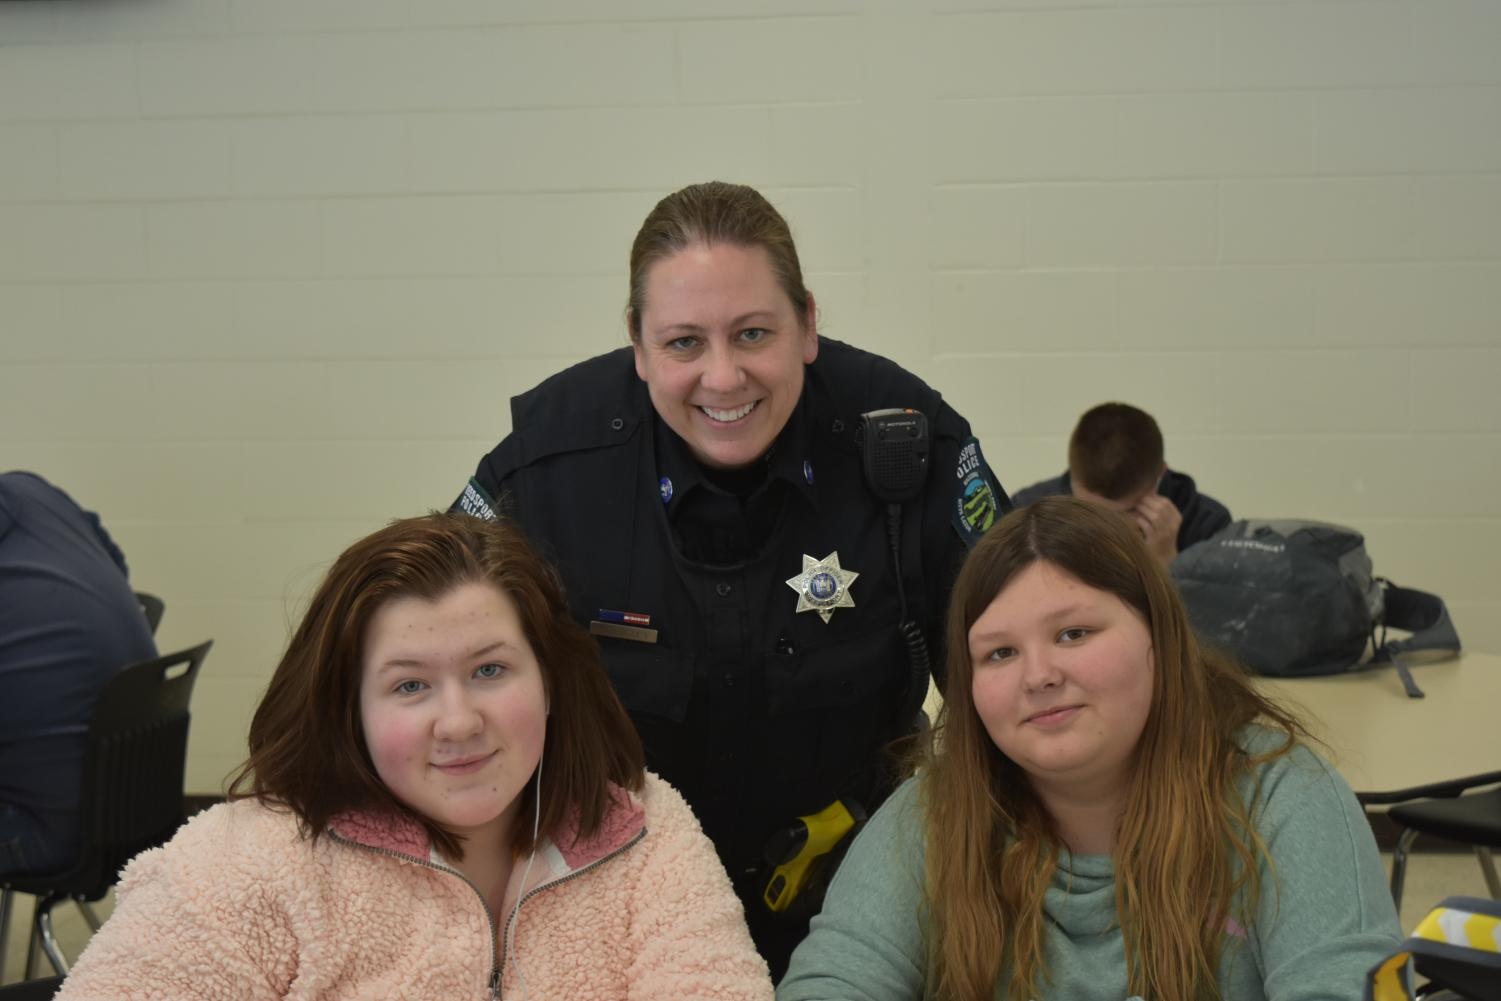 Officer Quigley takes a moment out of her day to share a smile with Weedsport freshmen Maddie Higgins and Brooklyn Smith.